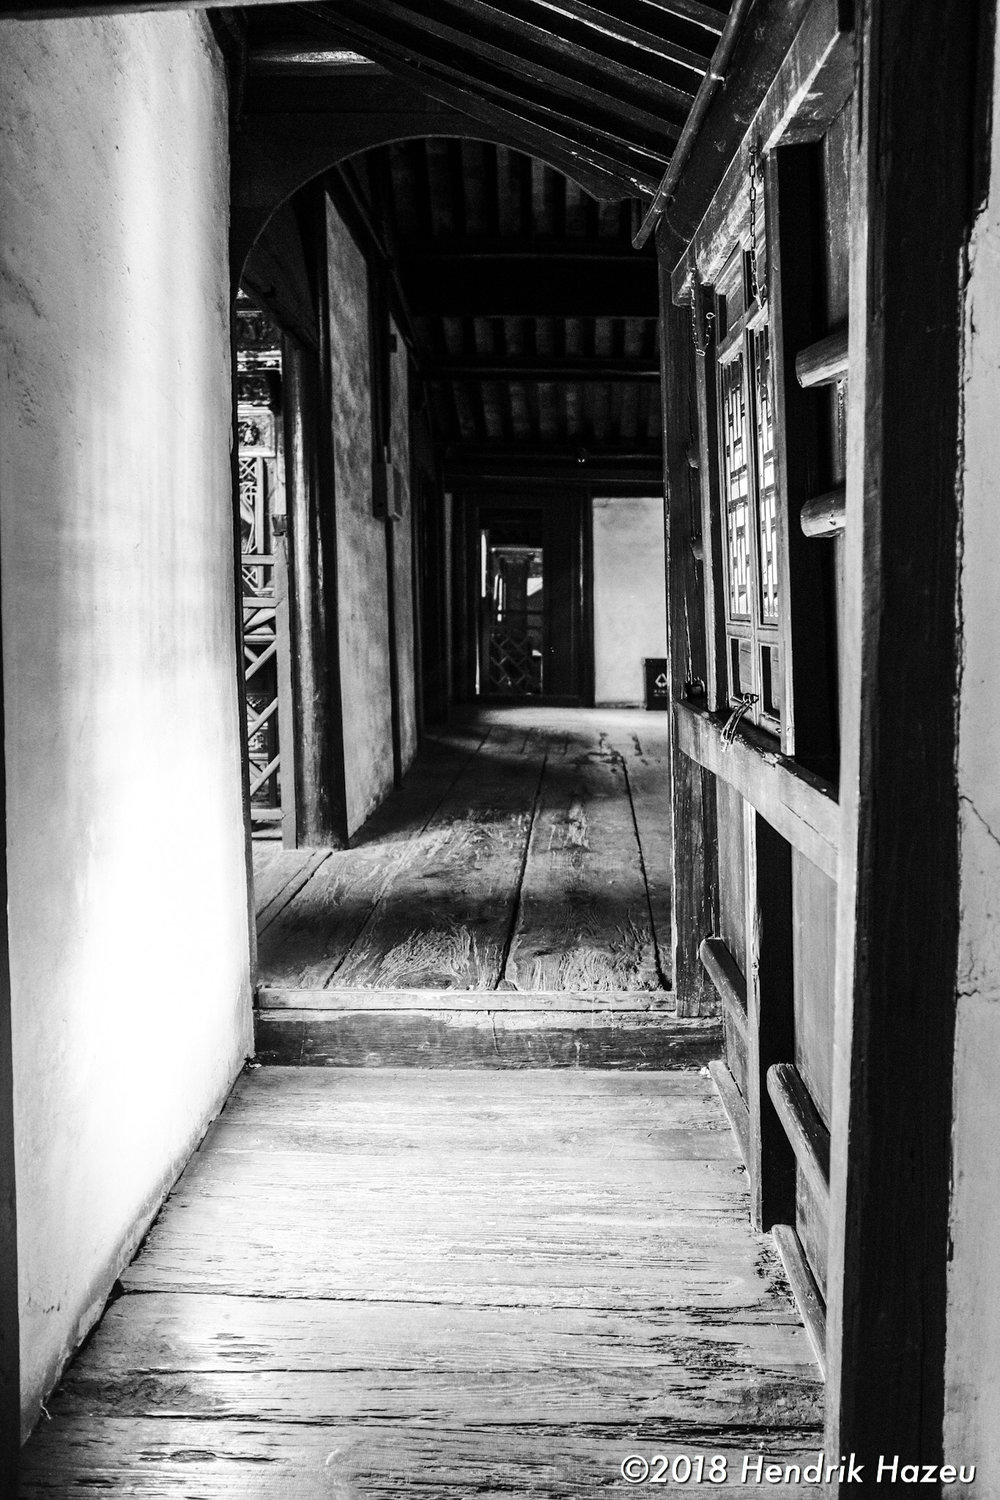 Chinese hallway, Fuji X100F, 23mm f/2 @f/2.8, 1/42sec ISO1600 developed in LR CC mobile